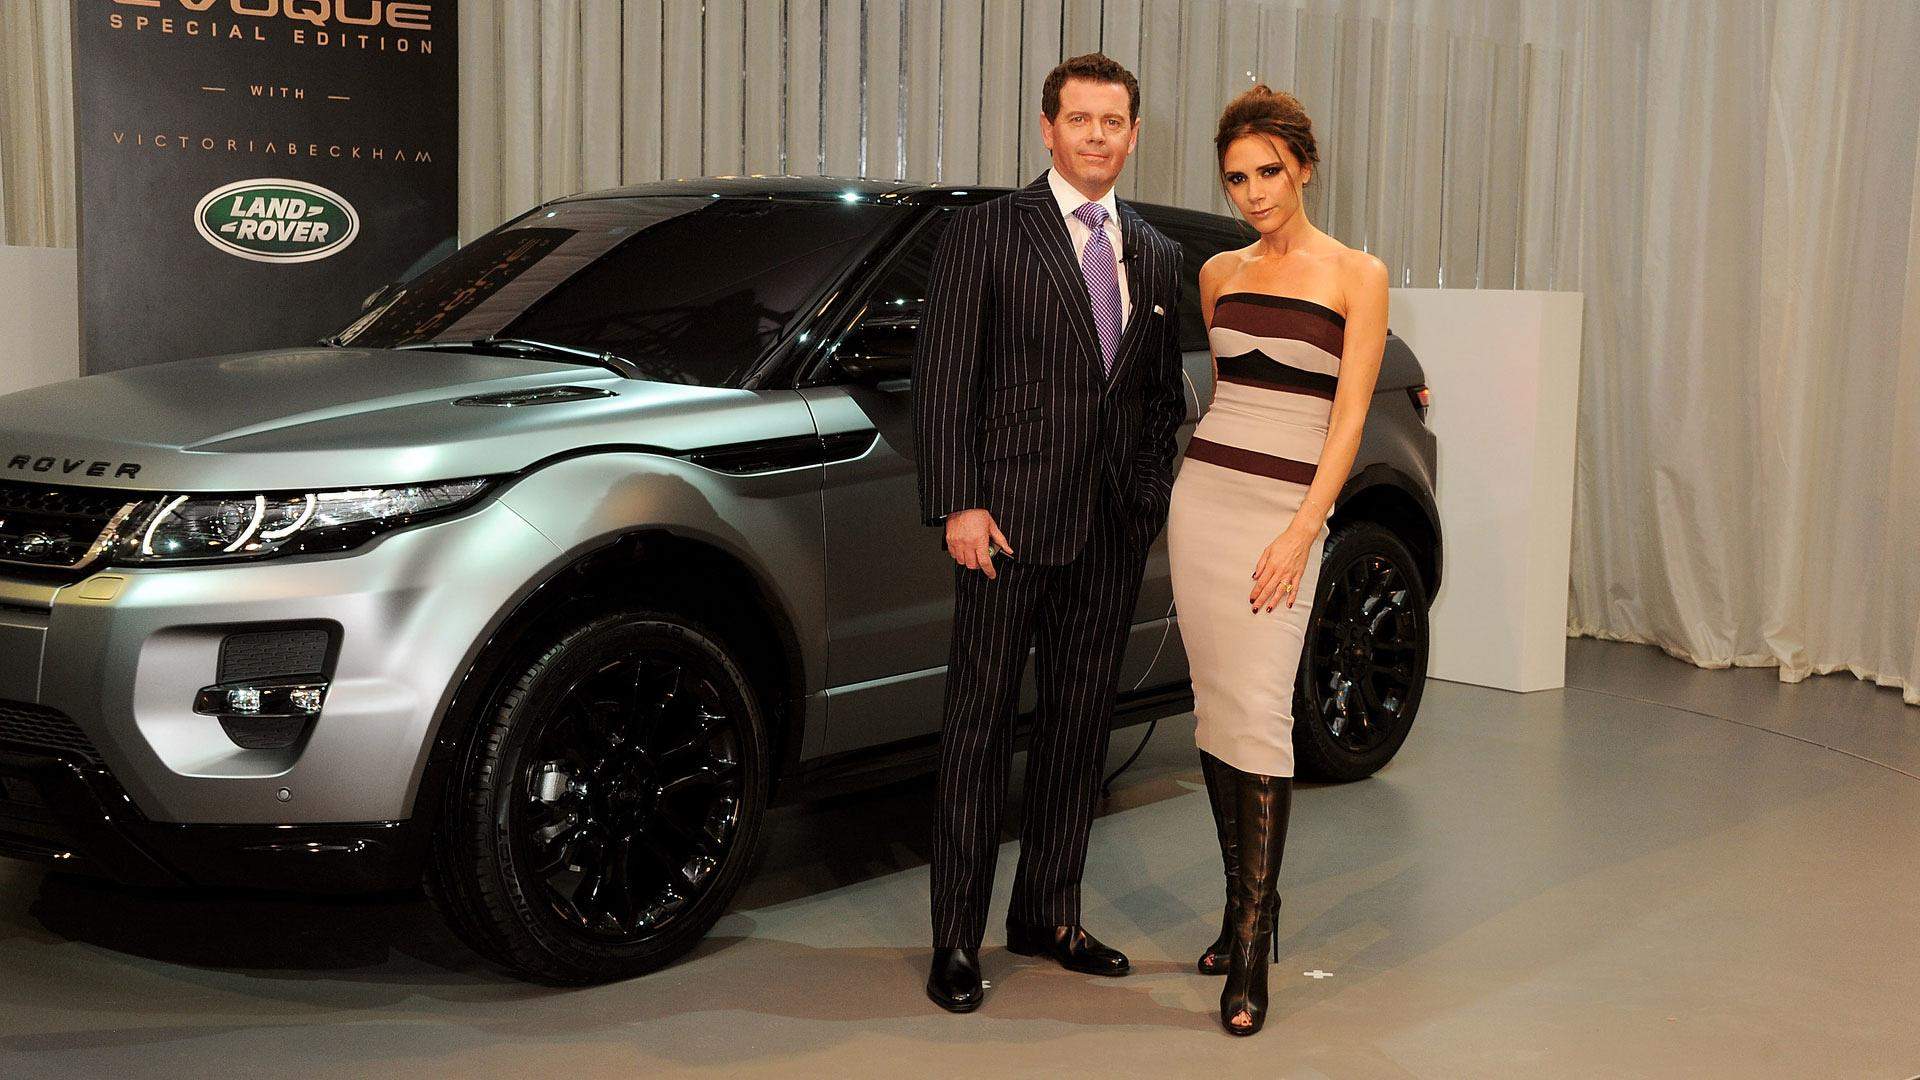 https://icdn-6.motor1.com/images/mgl/ZA2Go/s1/gerry-mcgovern-and-victoria-beckham.jpg